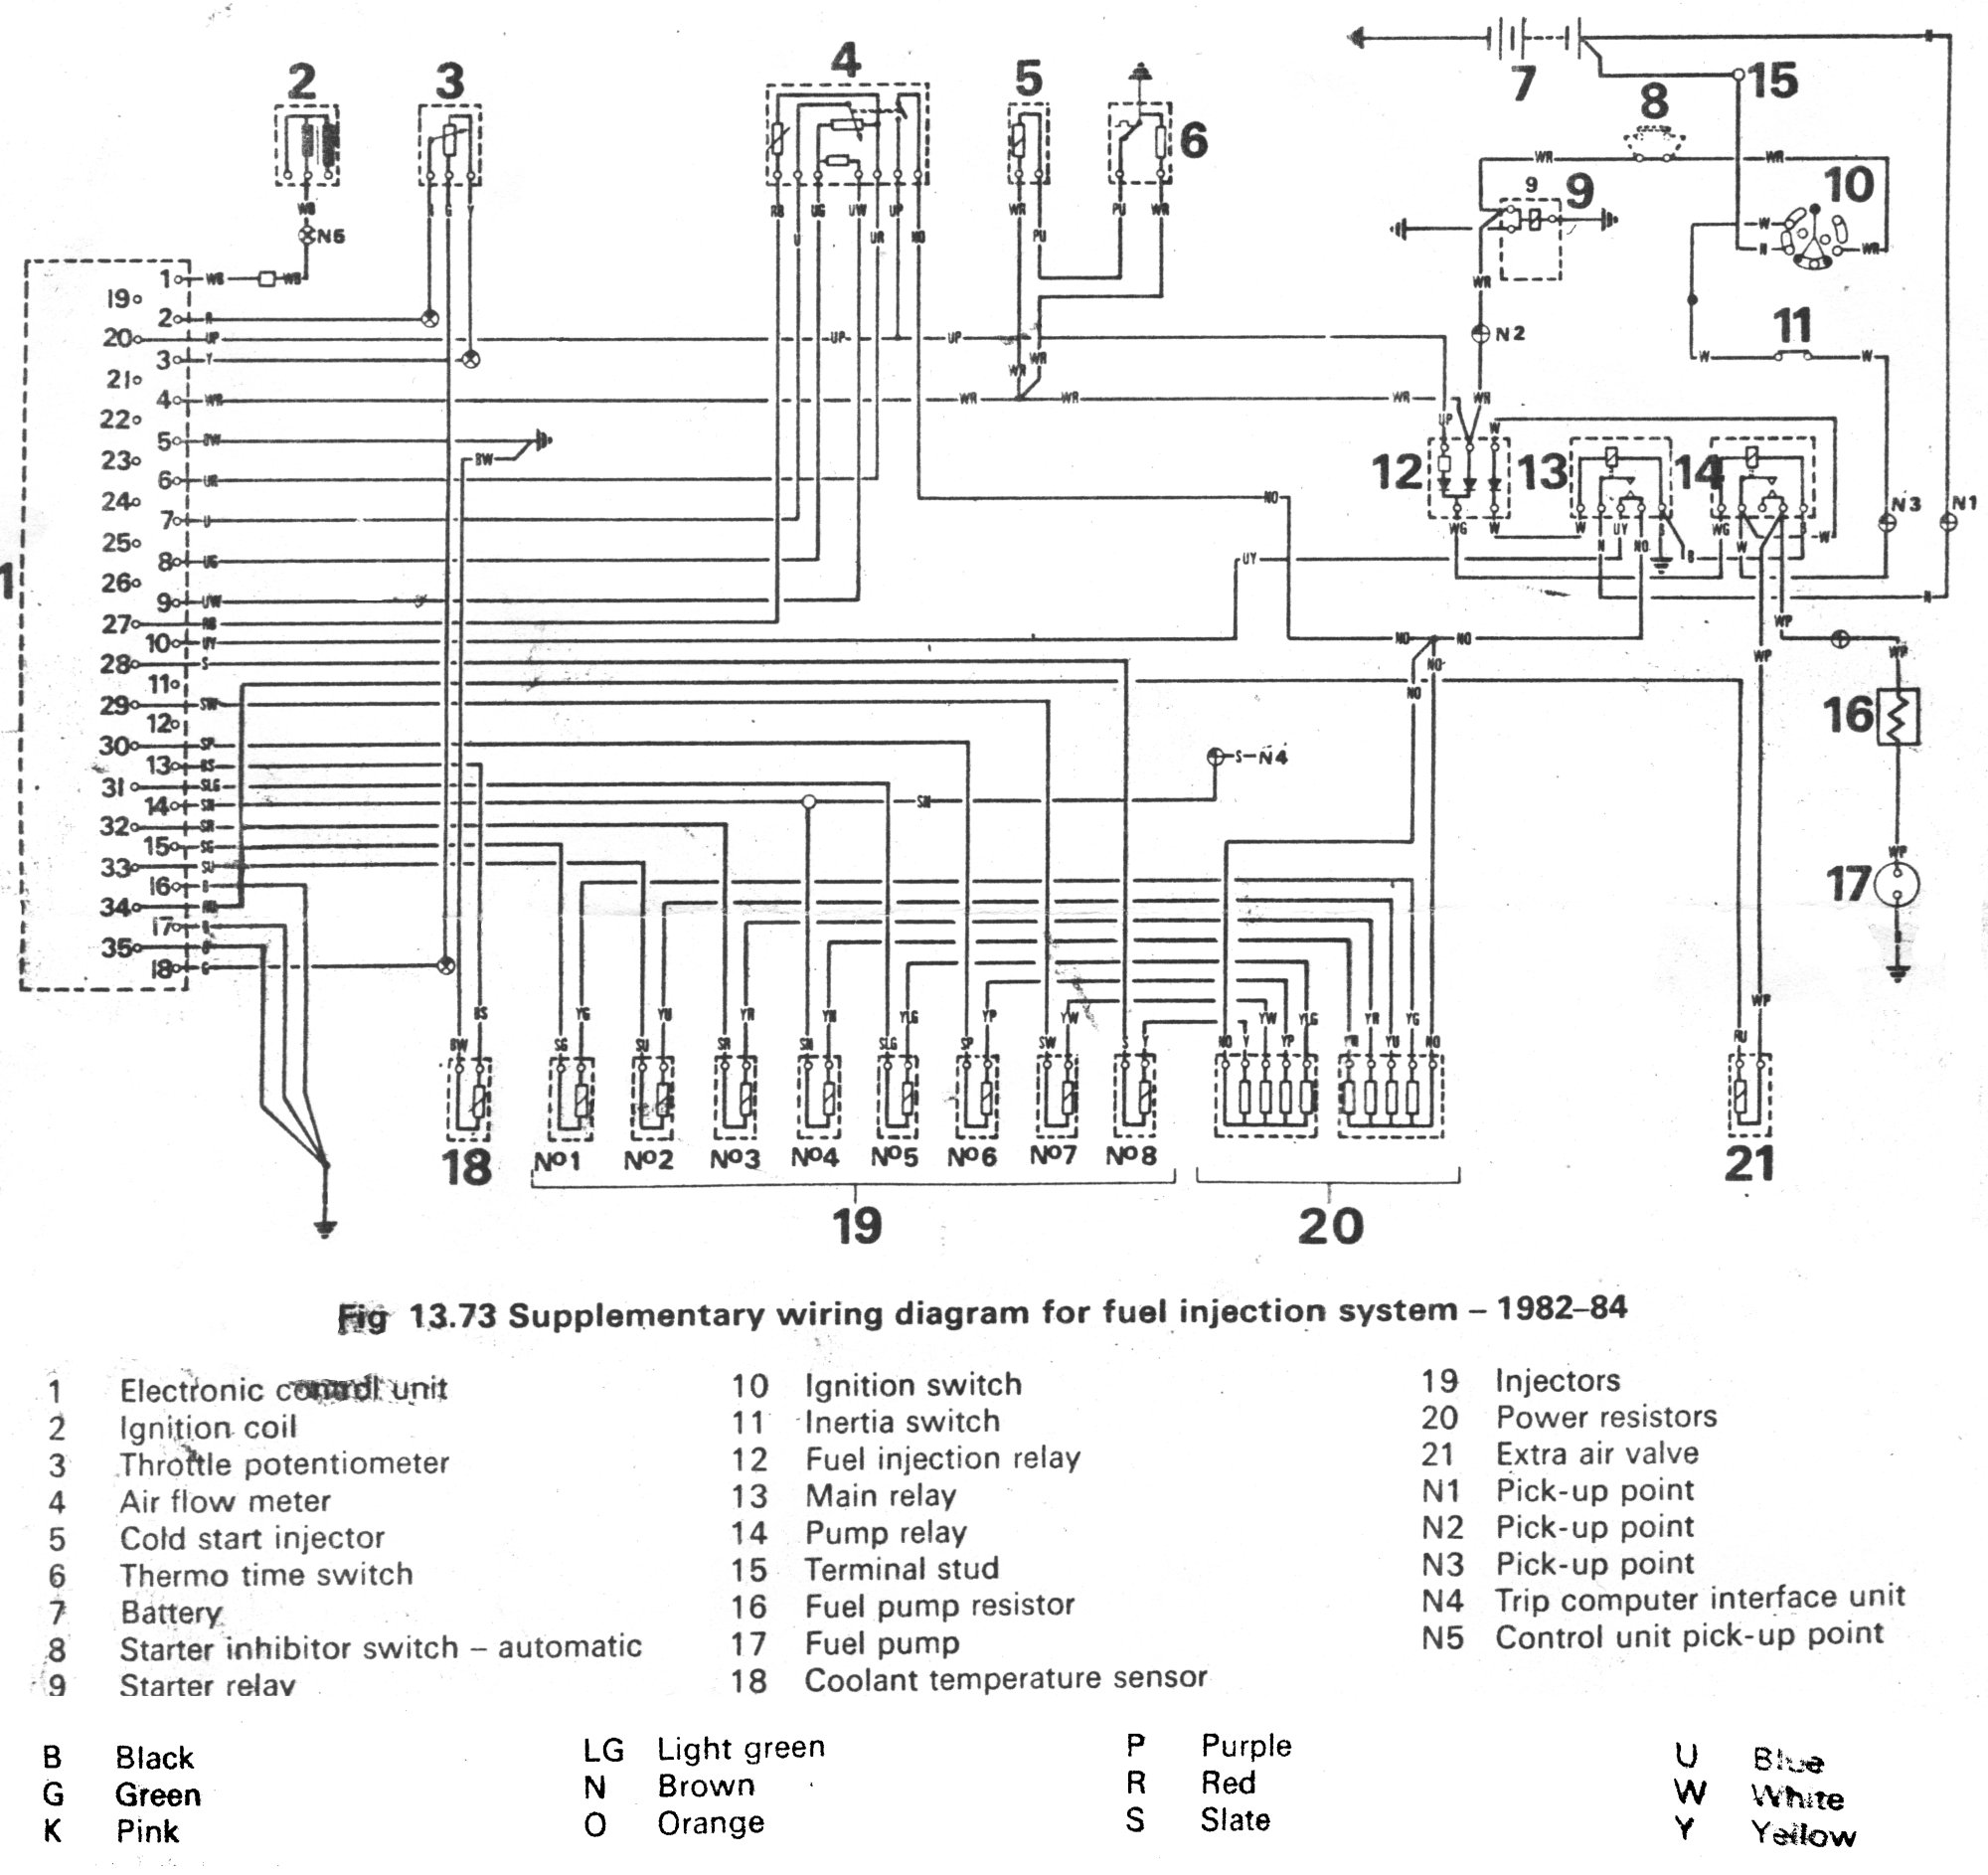 discovery 4 headlight wiring diagram wiring diagram origin headlight wiring  schematic discovery 4 headlight wiring diagram